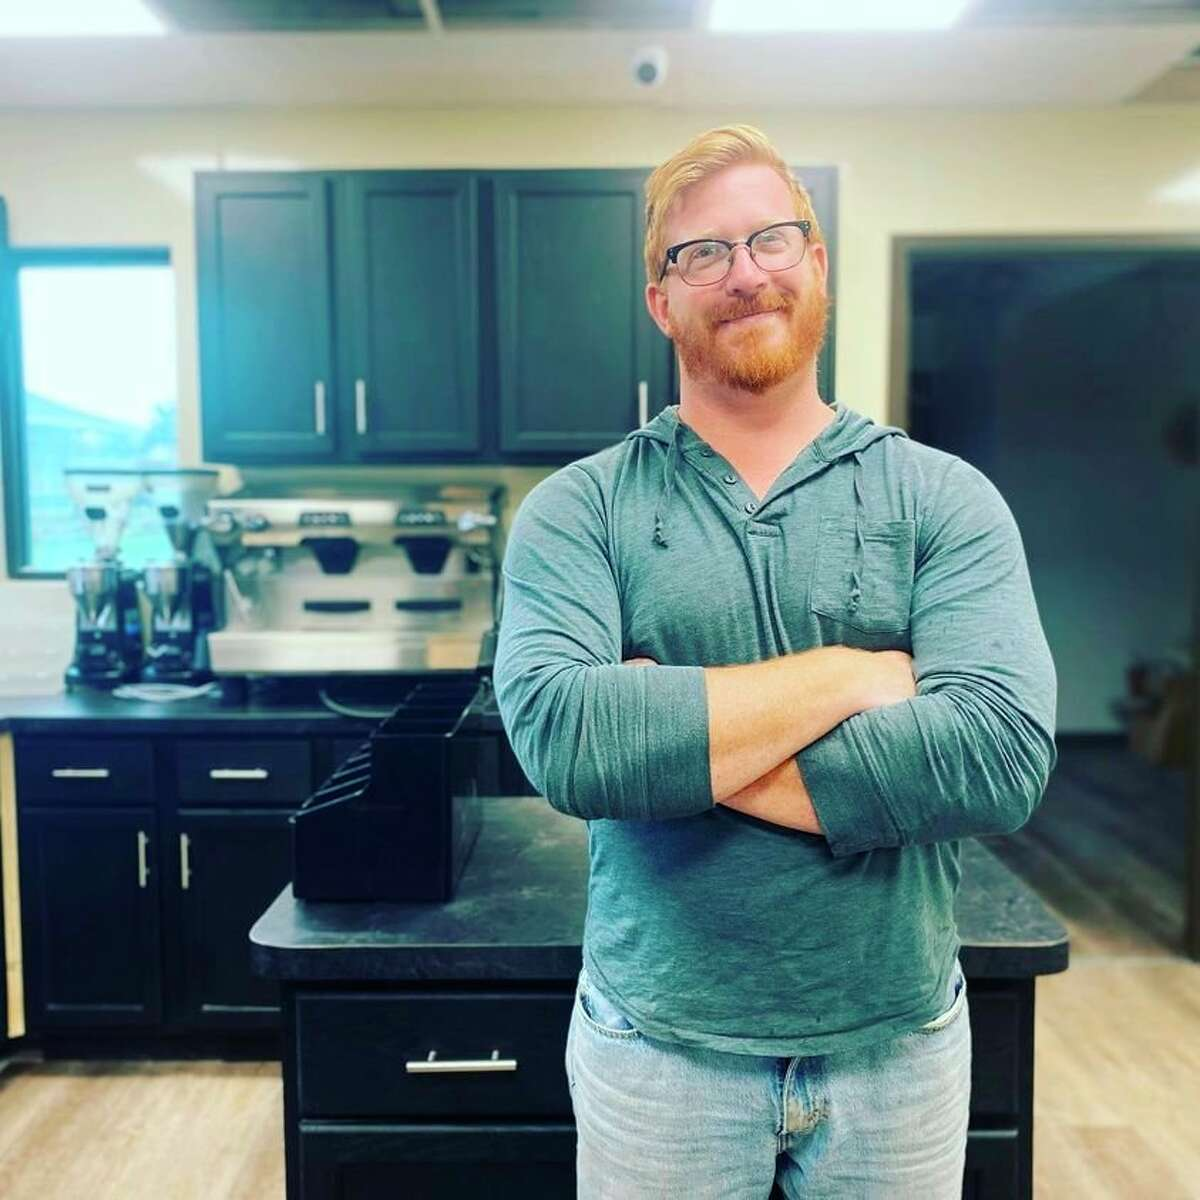 Emma's Coffee House owner Brad Severance at what will become Emma's Pigeon location, which will be operated in conjunction with Laker's SAIL Academy. Students from the SAIL Academy will make up the new location's staff. (Emma's Coffee House/Courtesy Photo)